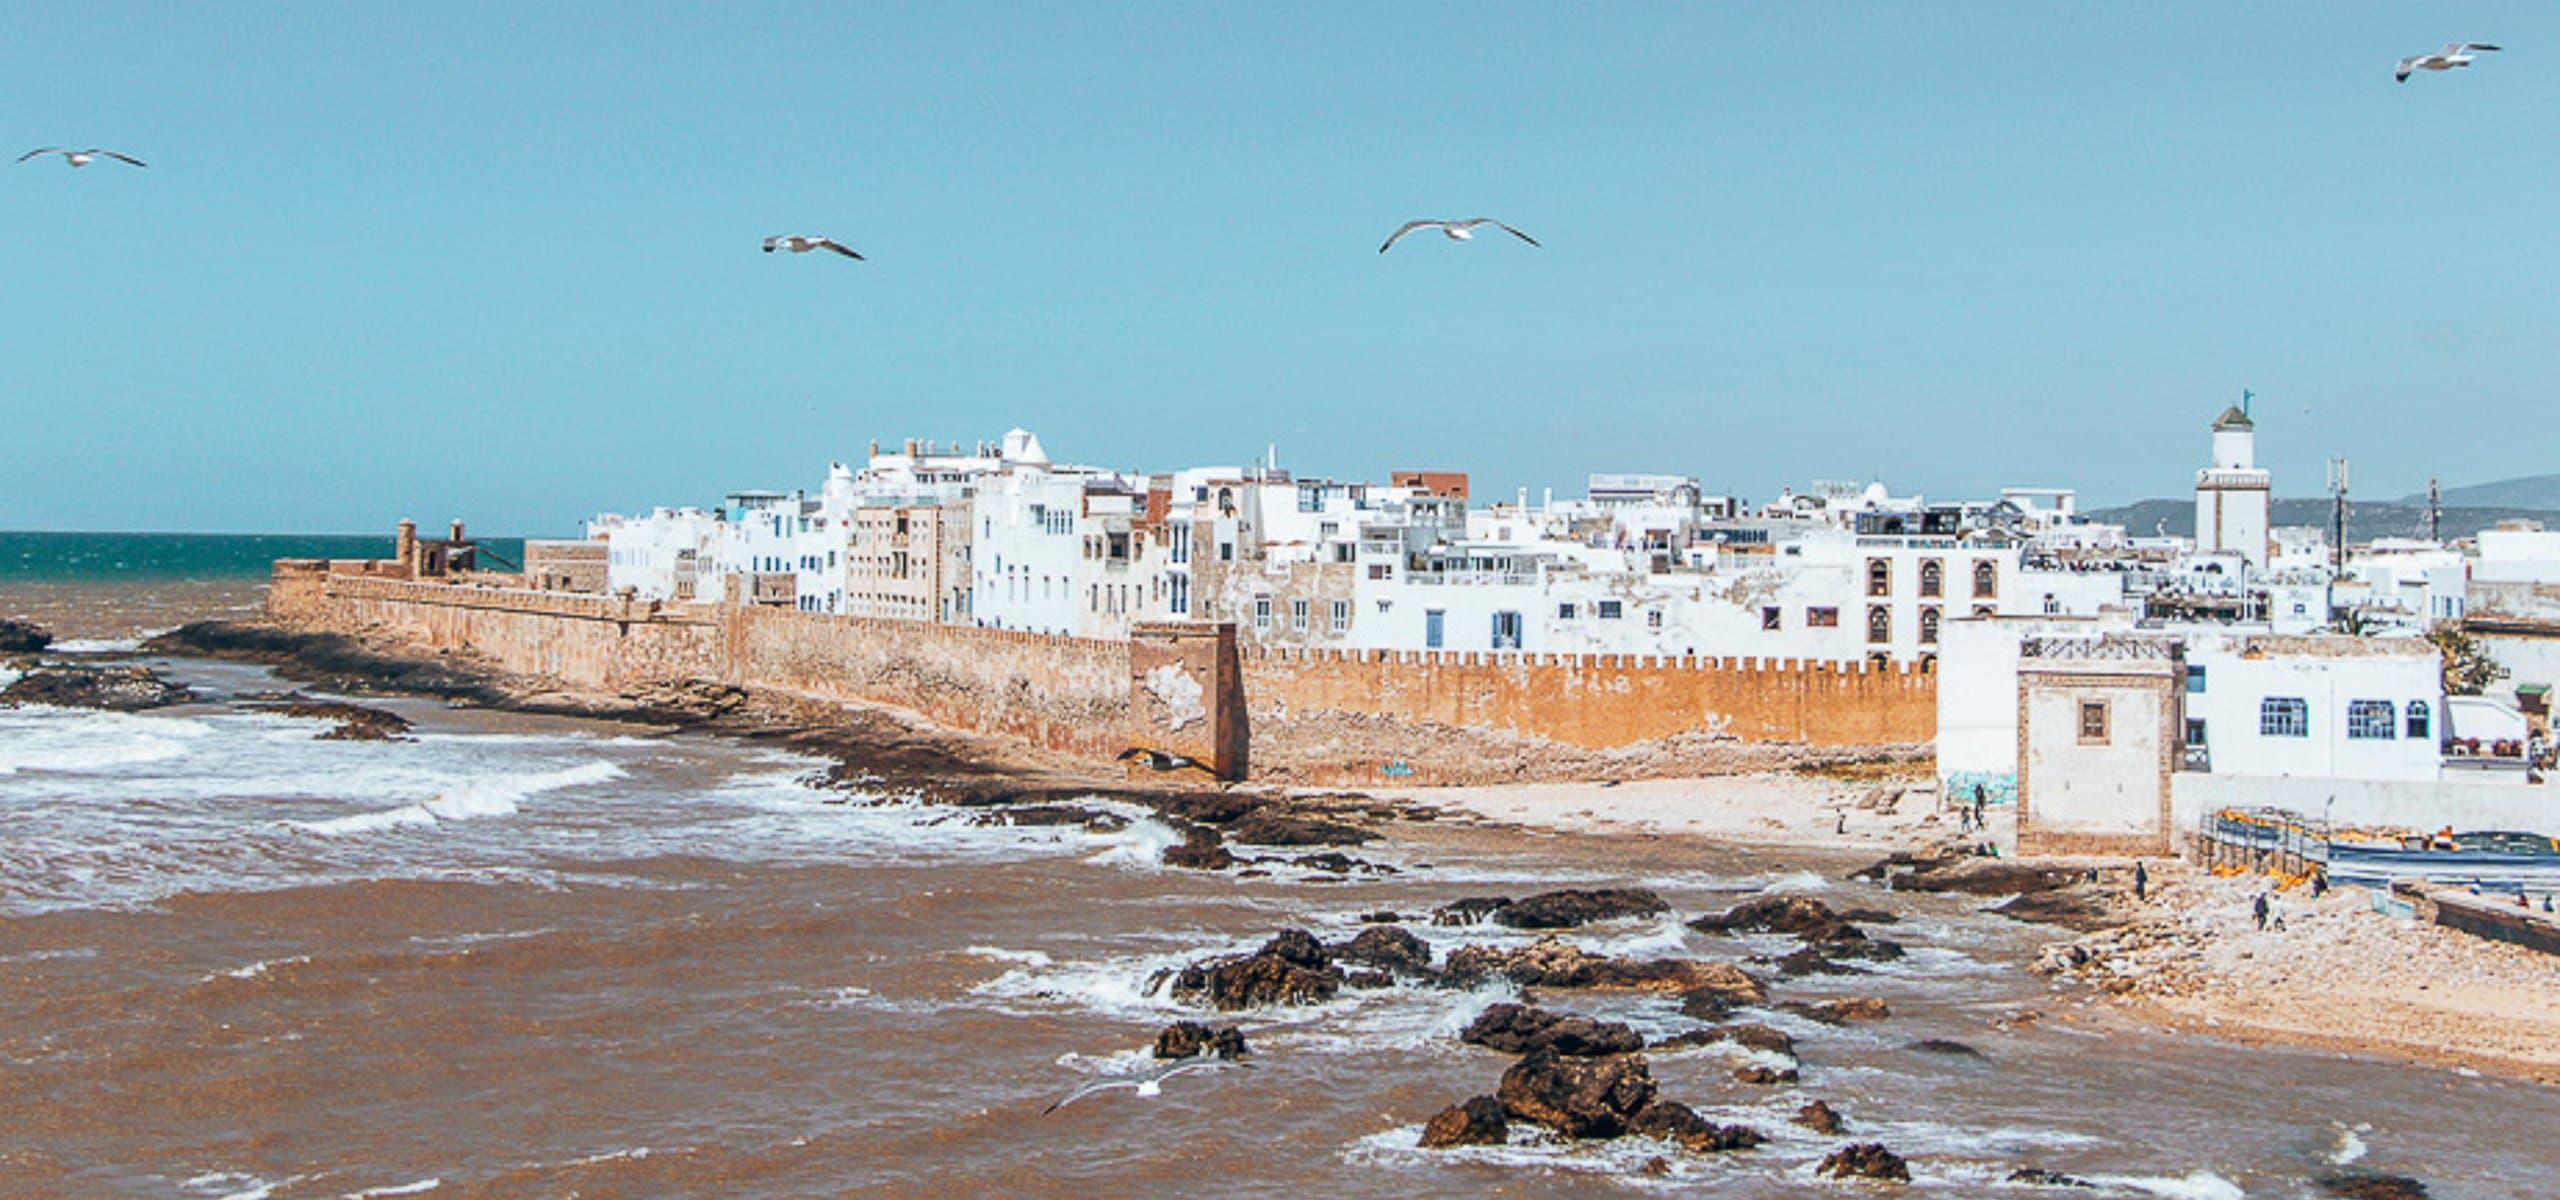 Morocco Travel Photography: 35 Photos To Inspire You To Visit